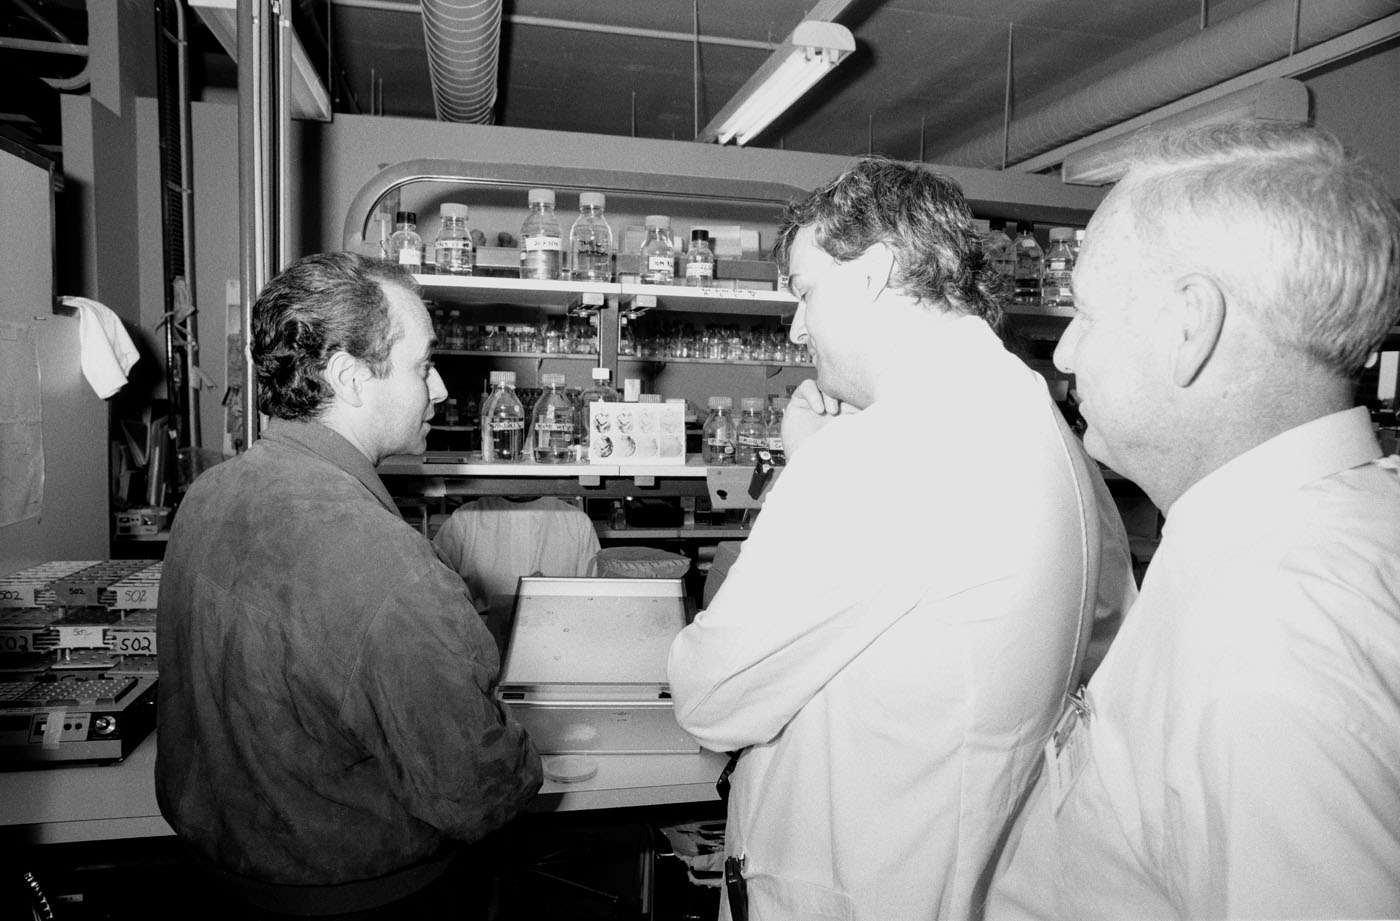 Carreras and Gough stand at a lab bench talking to each other, Metcalf looks on.